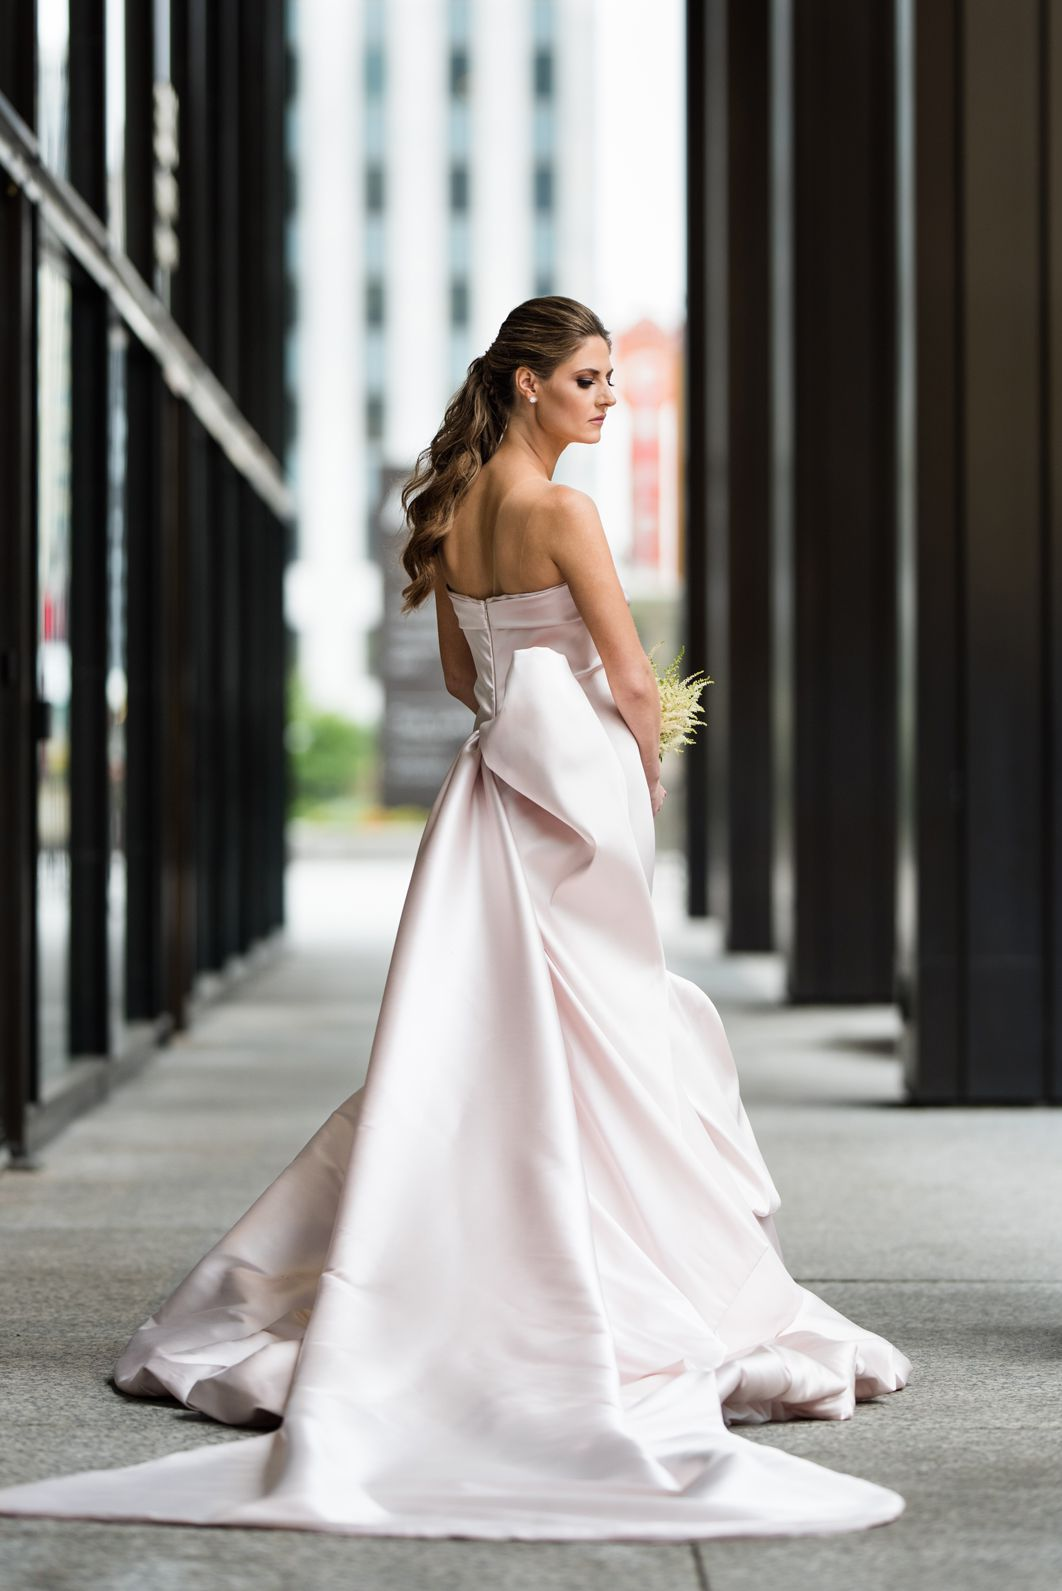 Back of bride's wedding gown with bow detail